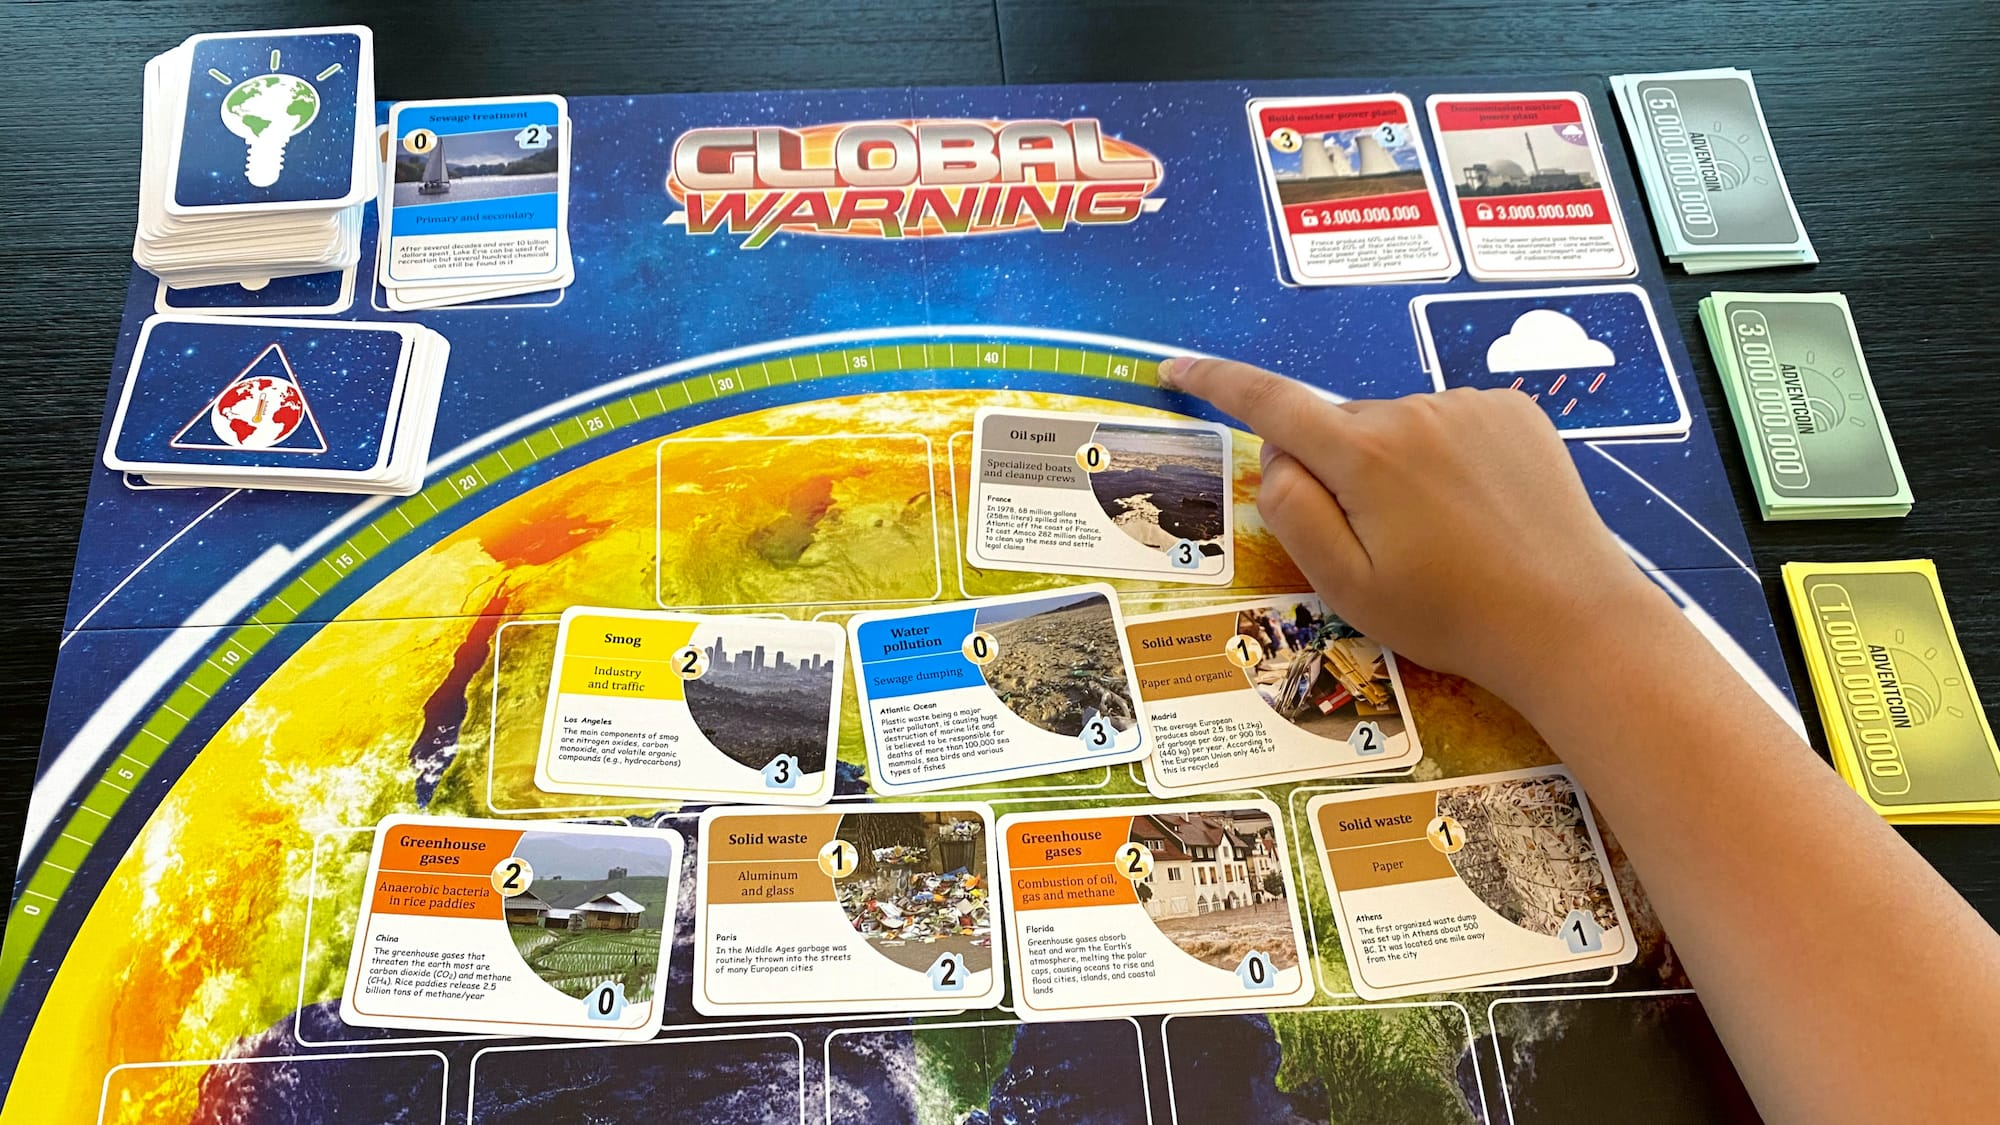 Adventerra Games's Global Warning climate change game cleans the earth & slows rising temps